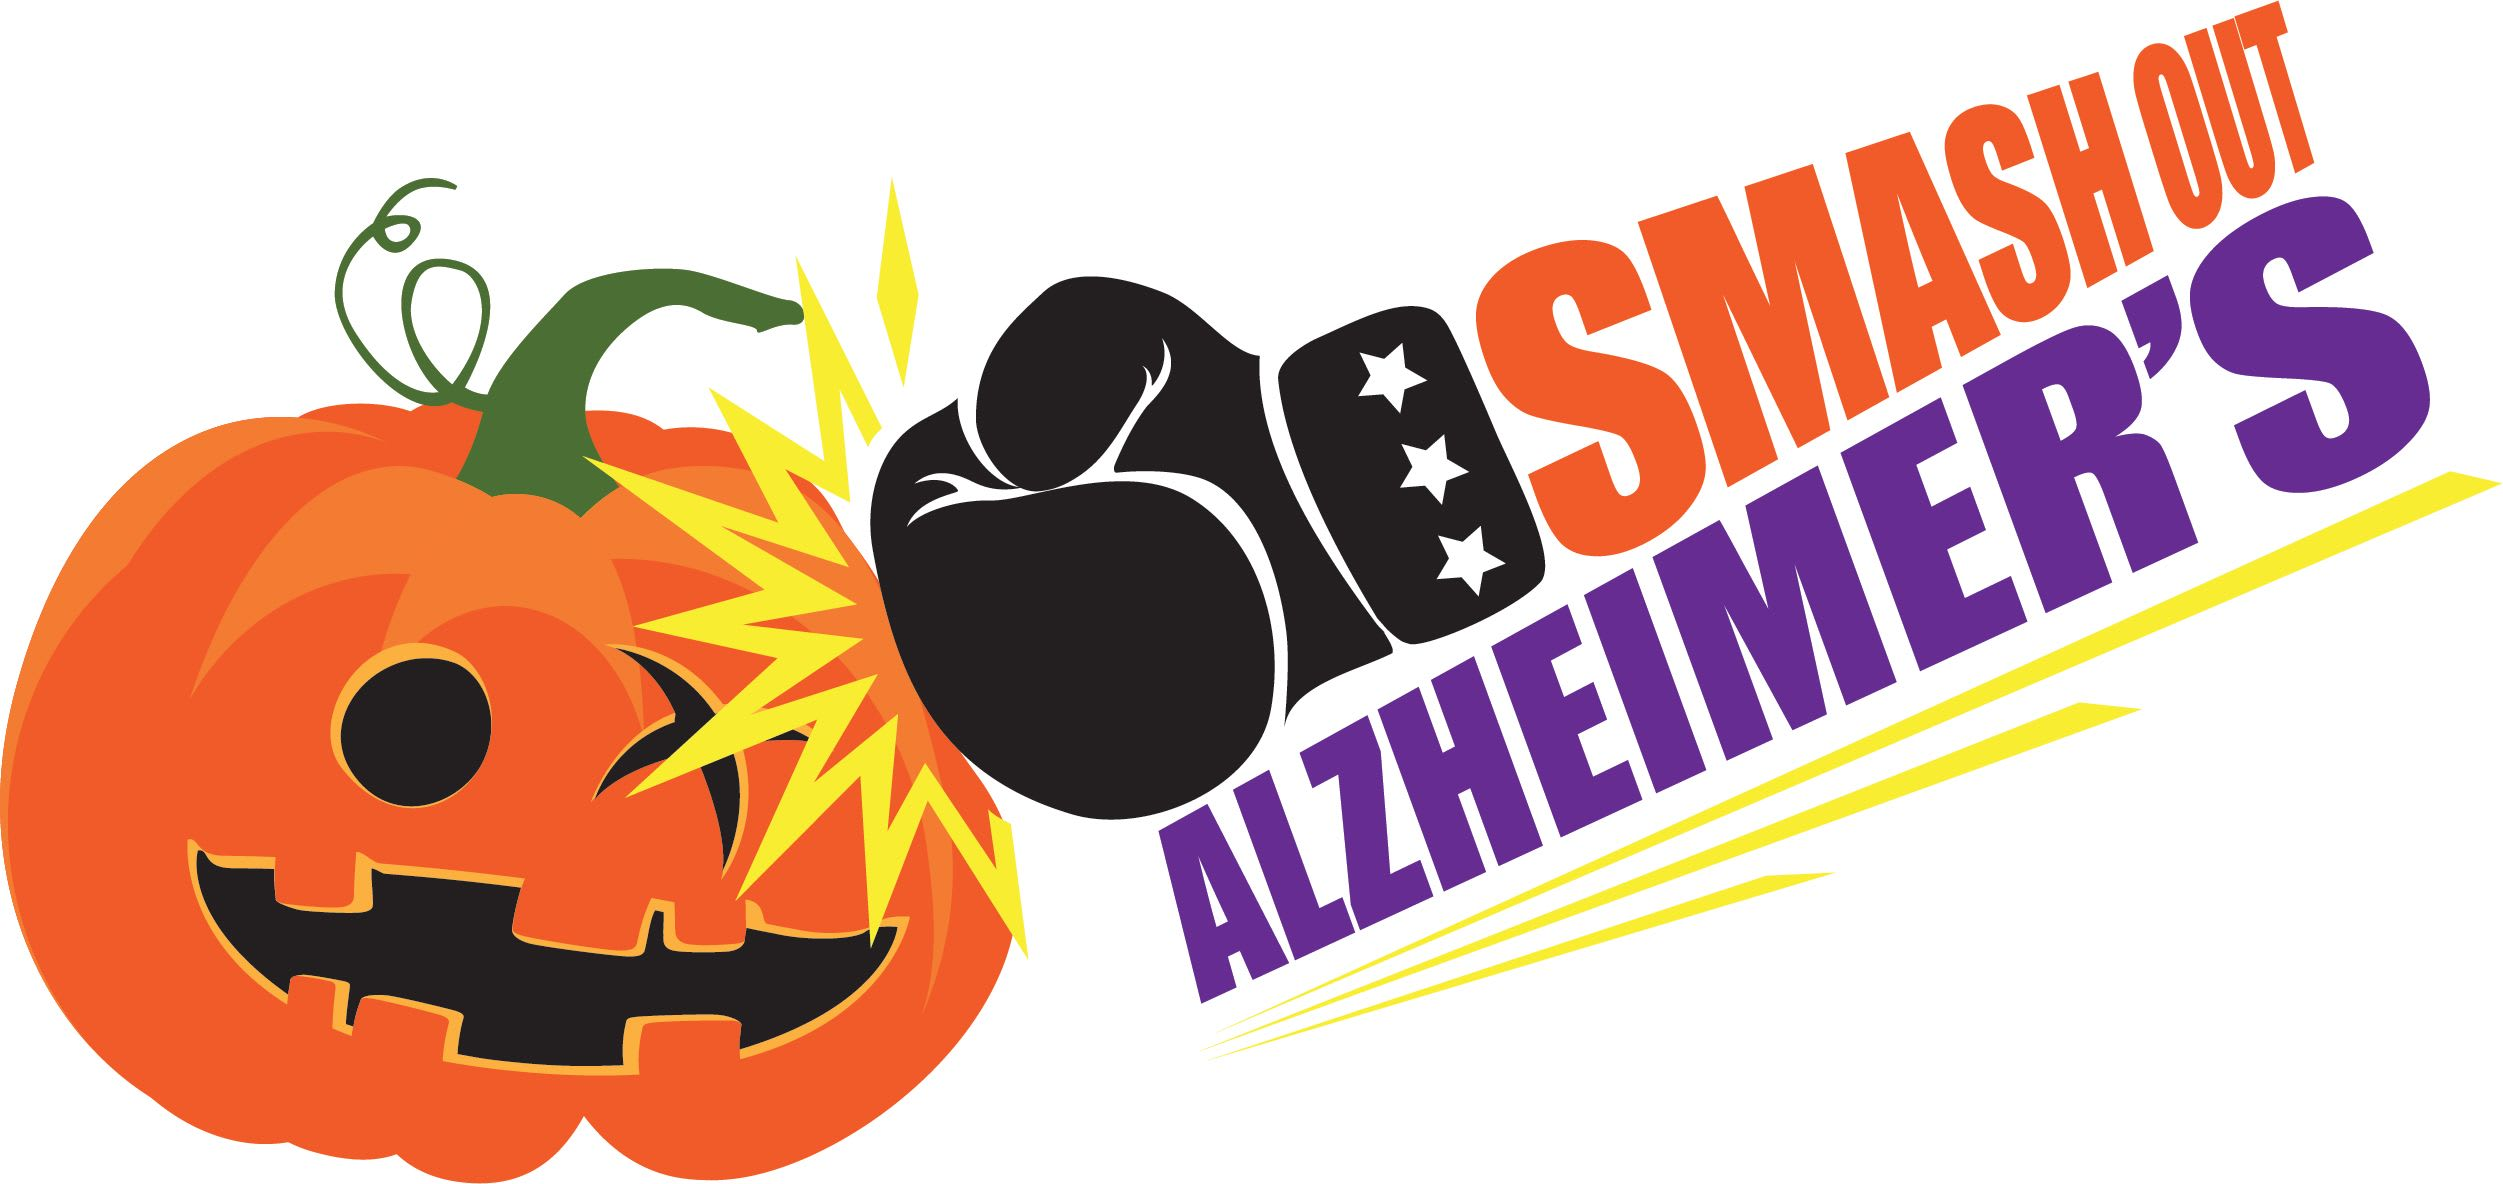 Smash Out Alzheimer's photo for Mattison Crossing at Manalapan Avenue in Freehold, New Jersey